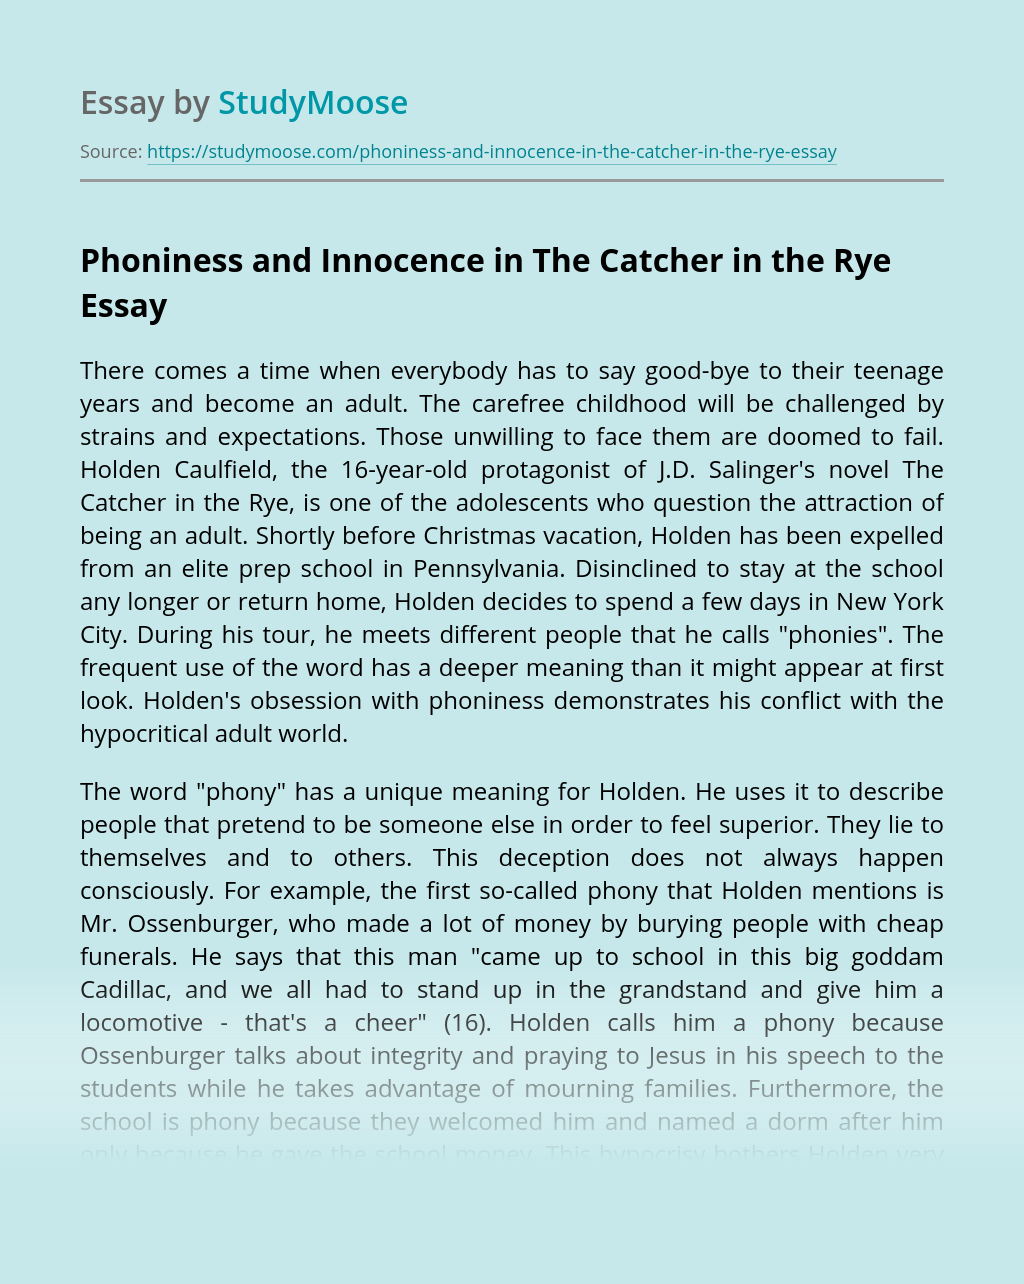 Phoniness and Innocence in The Catcher in the Rye